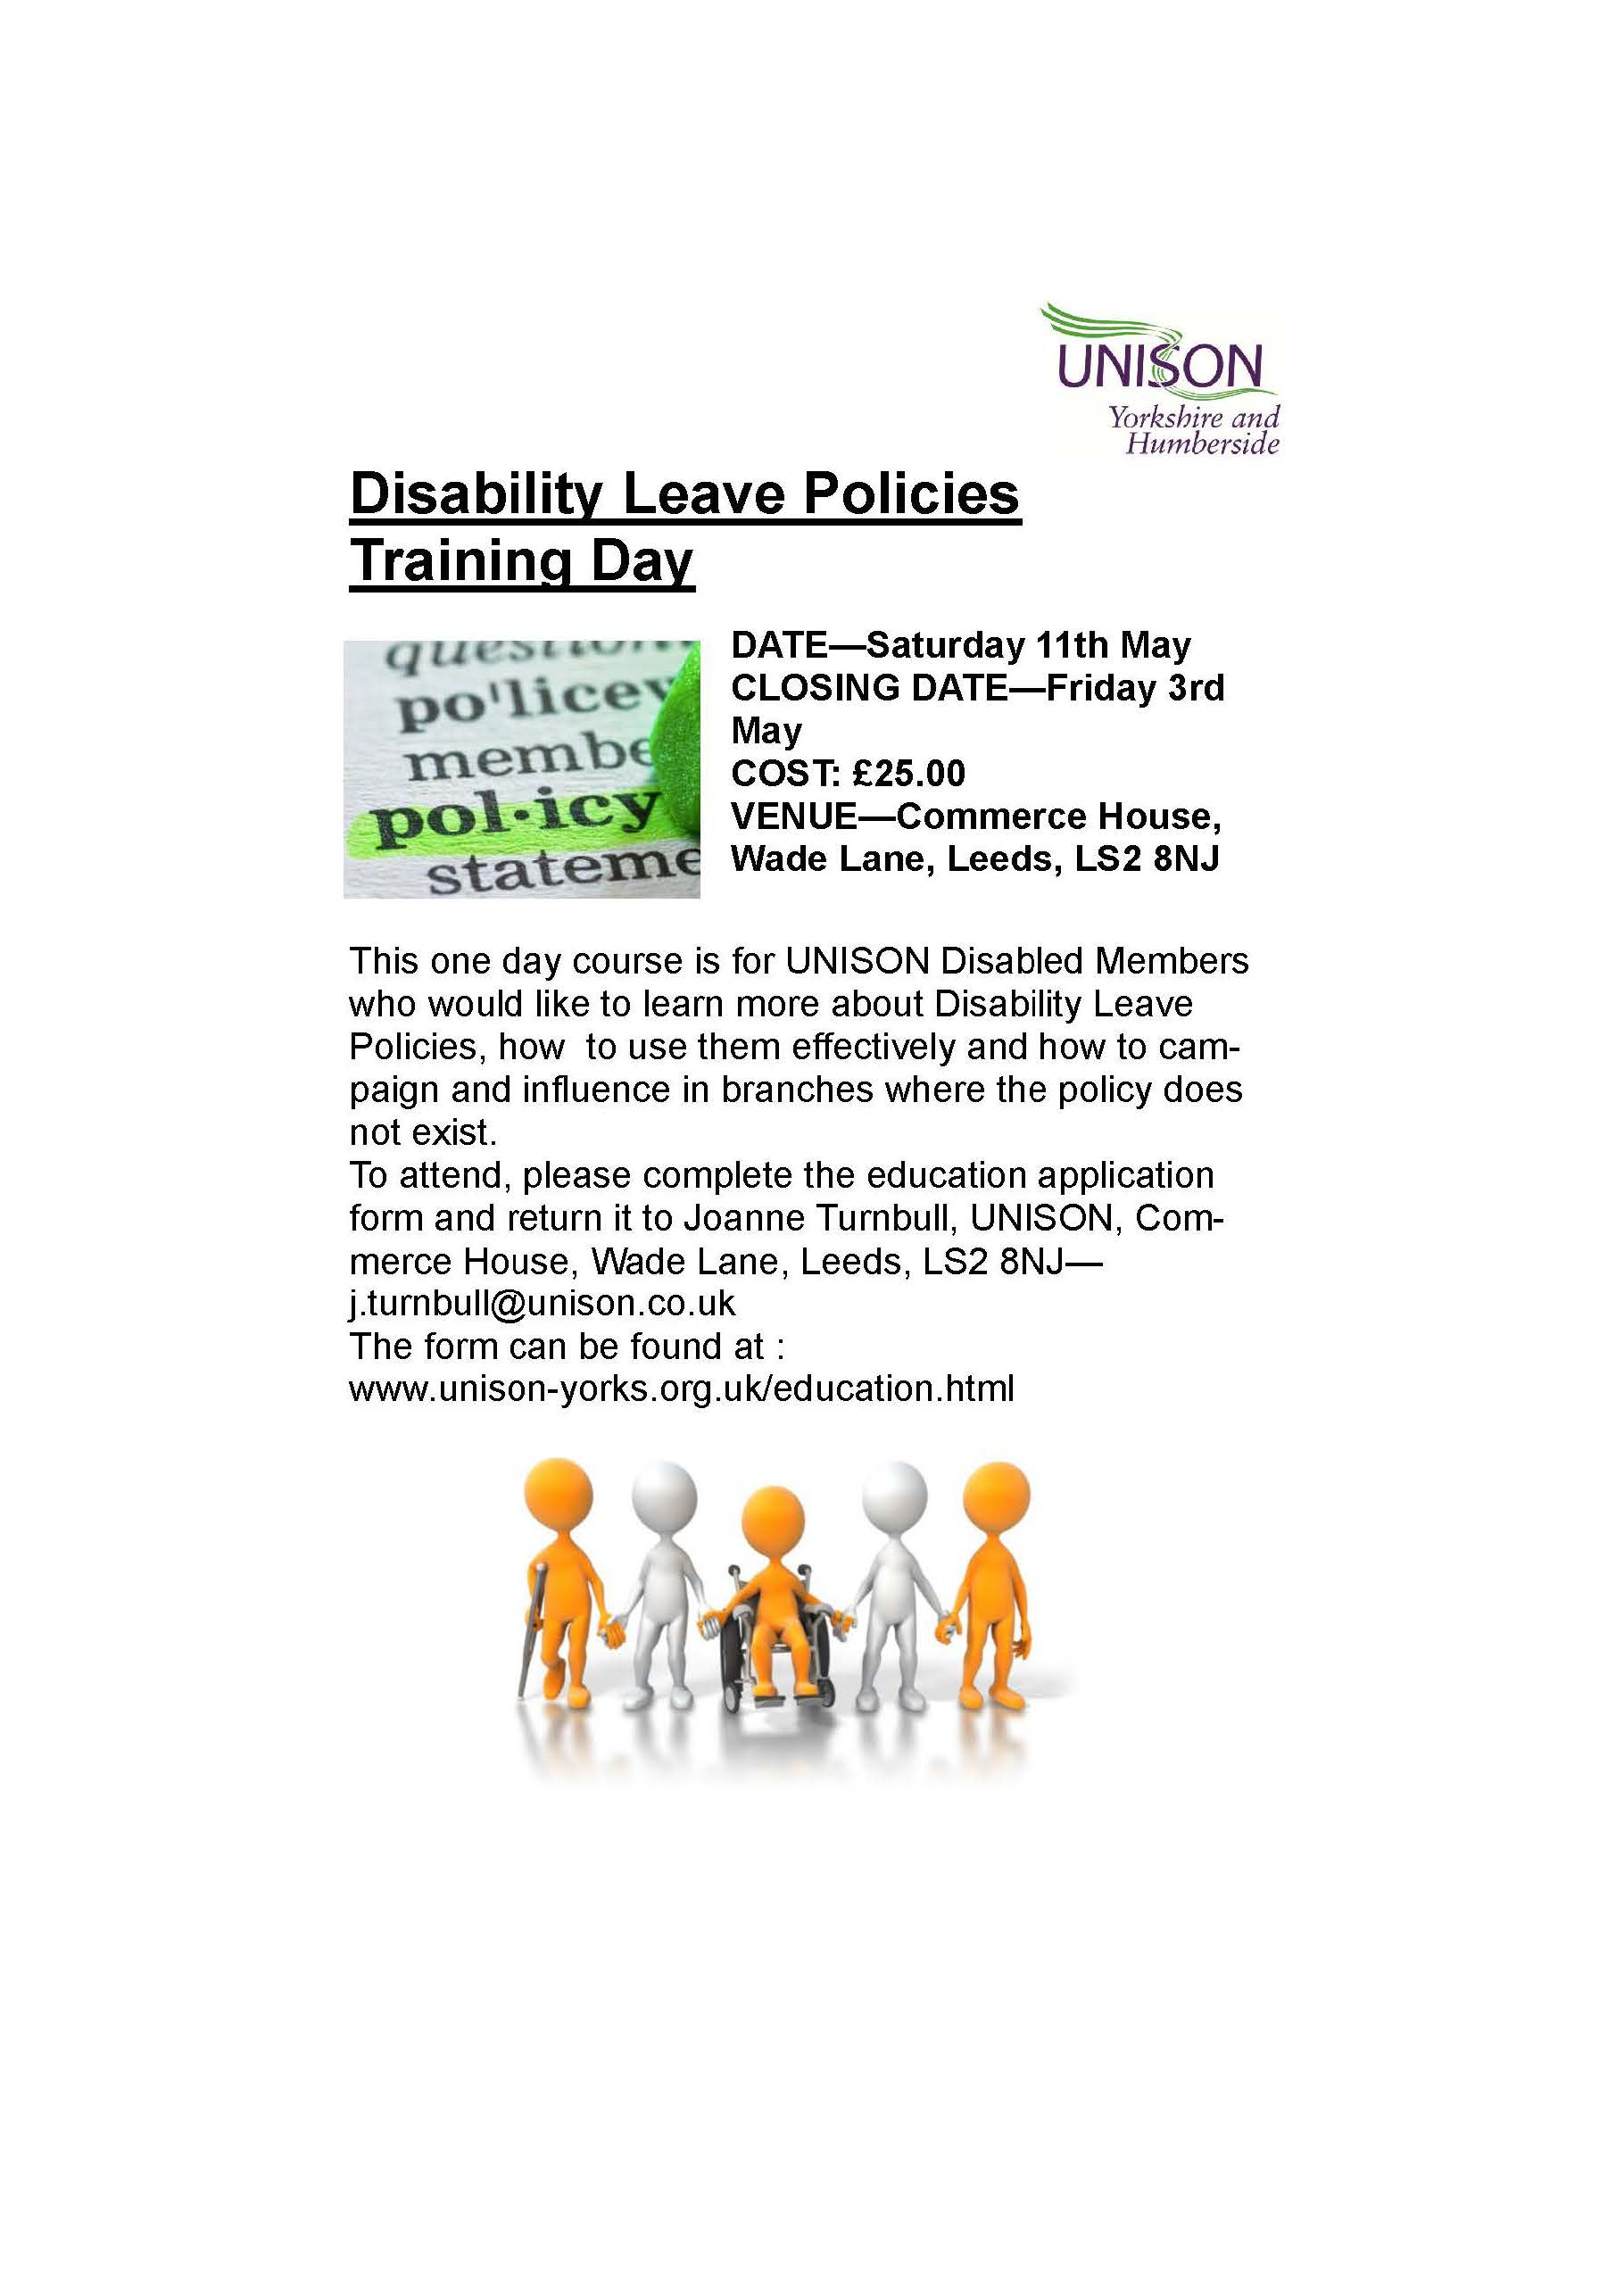 Disability Leave Policies Training Day